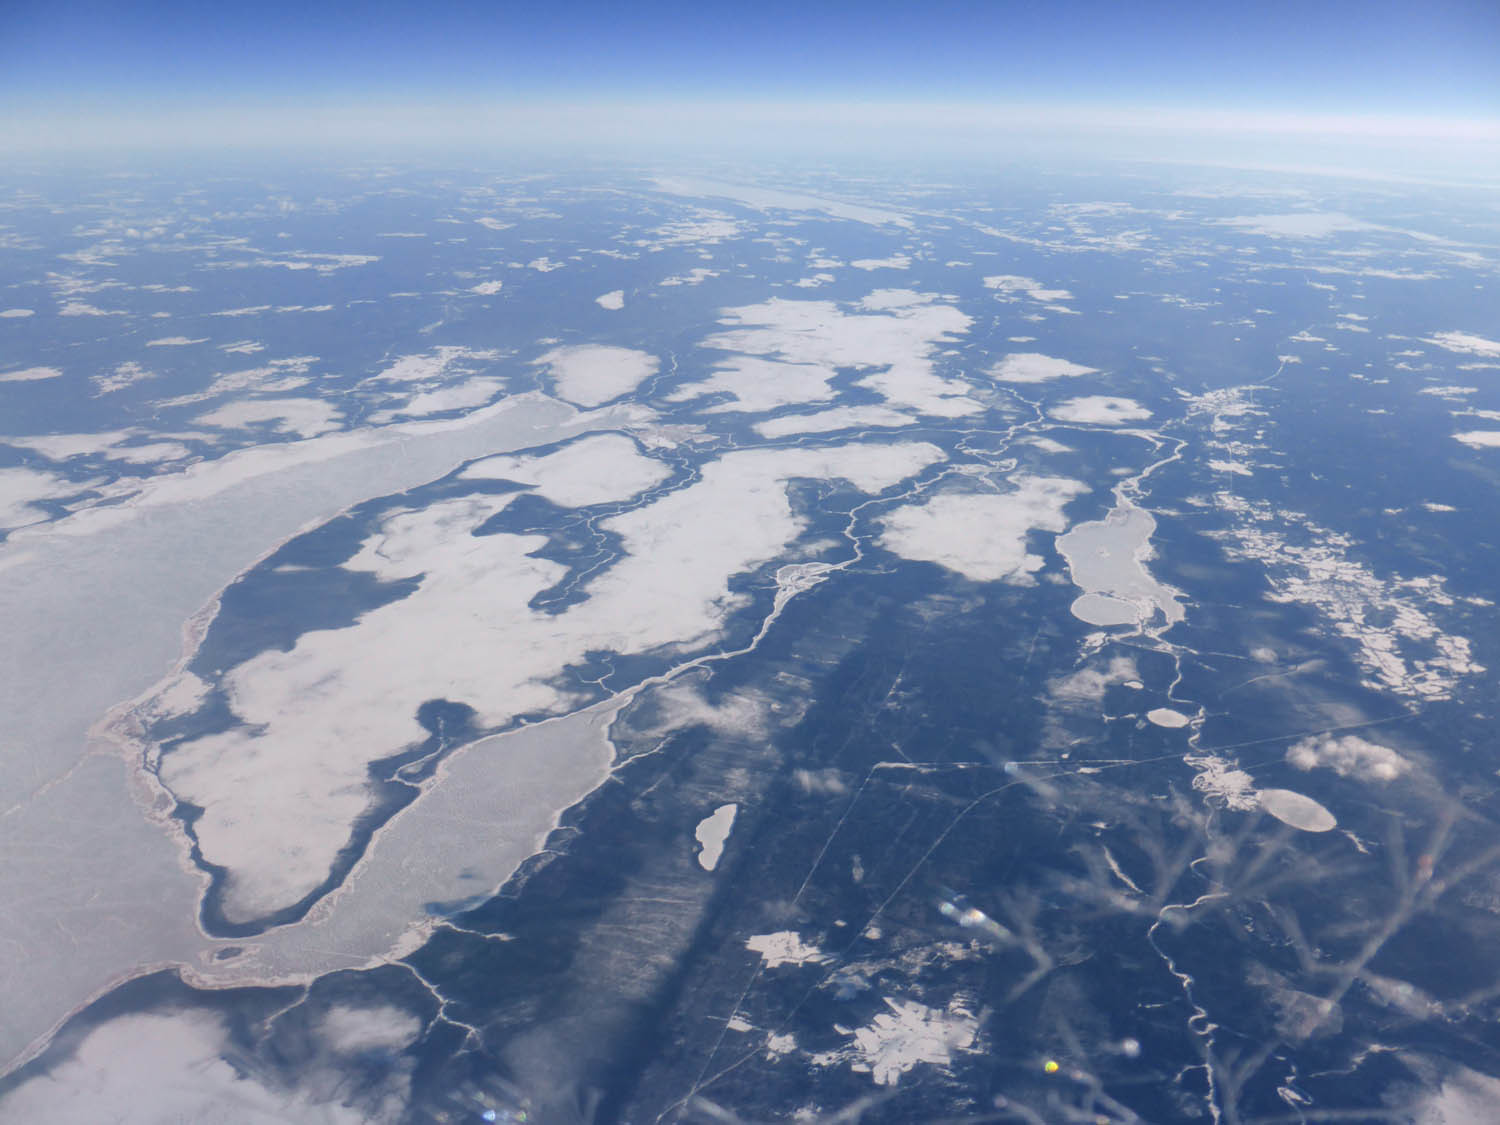 Frozen lake and wetlands